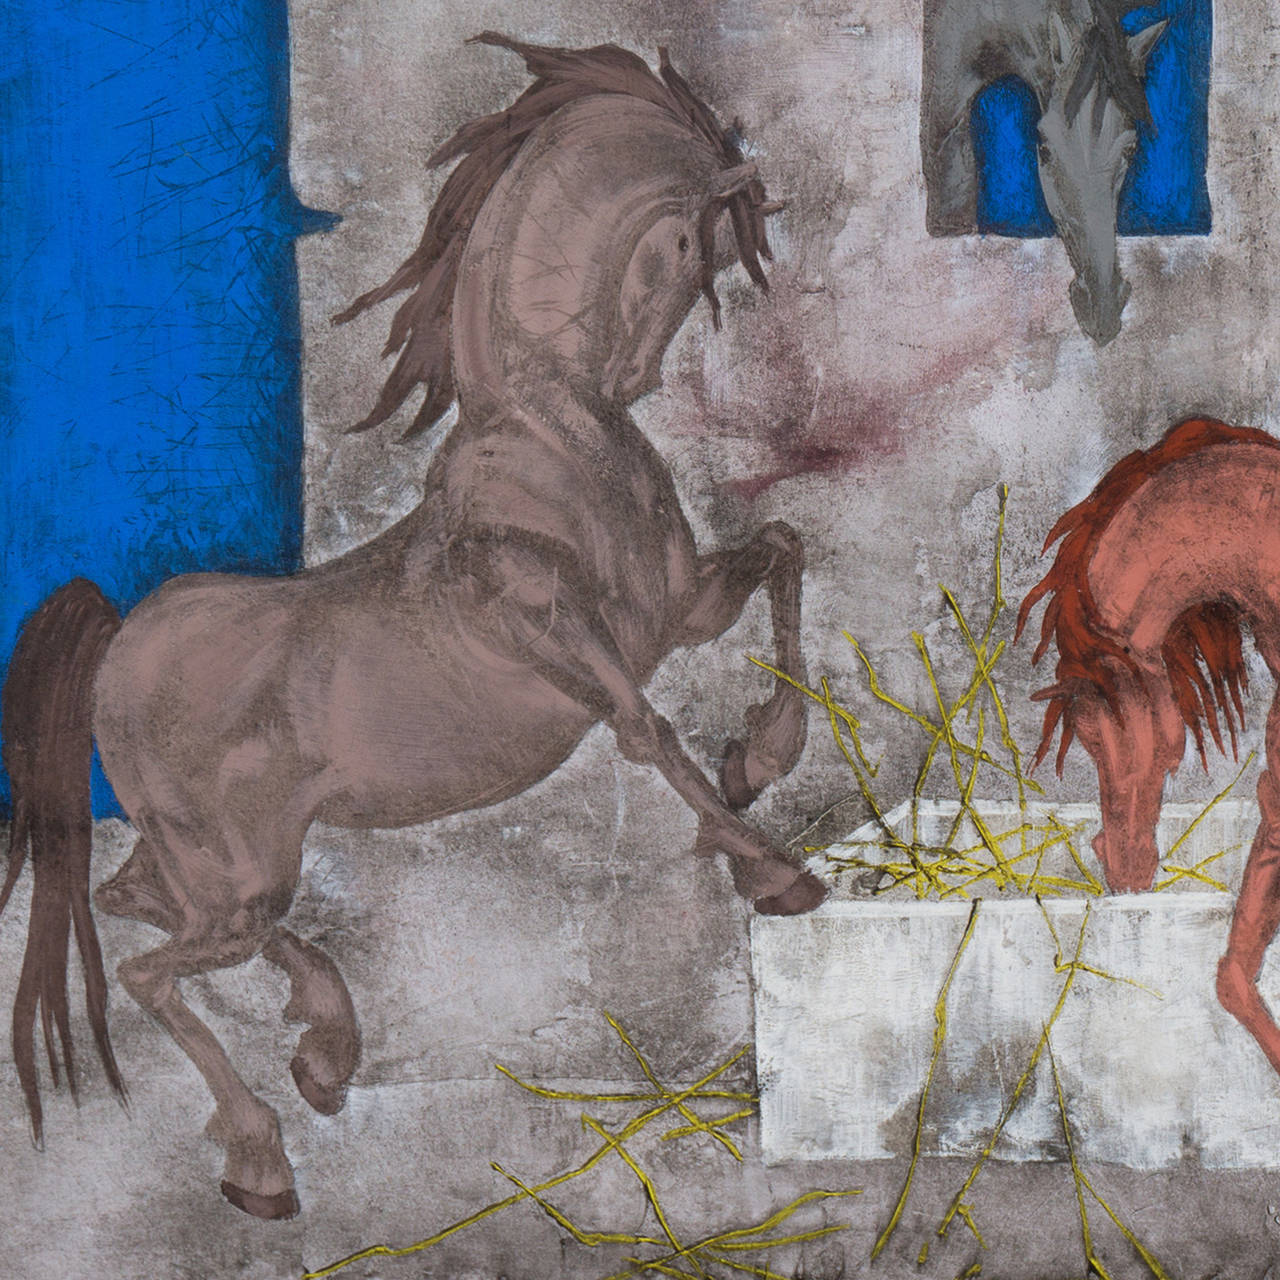 Horses in a Stable - Painting by Felix Varla